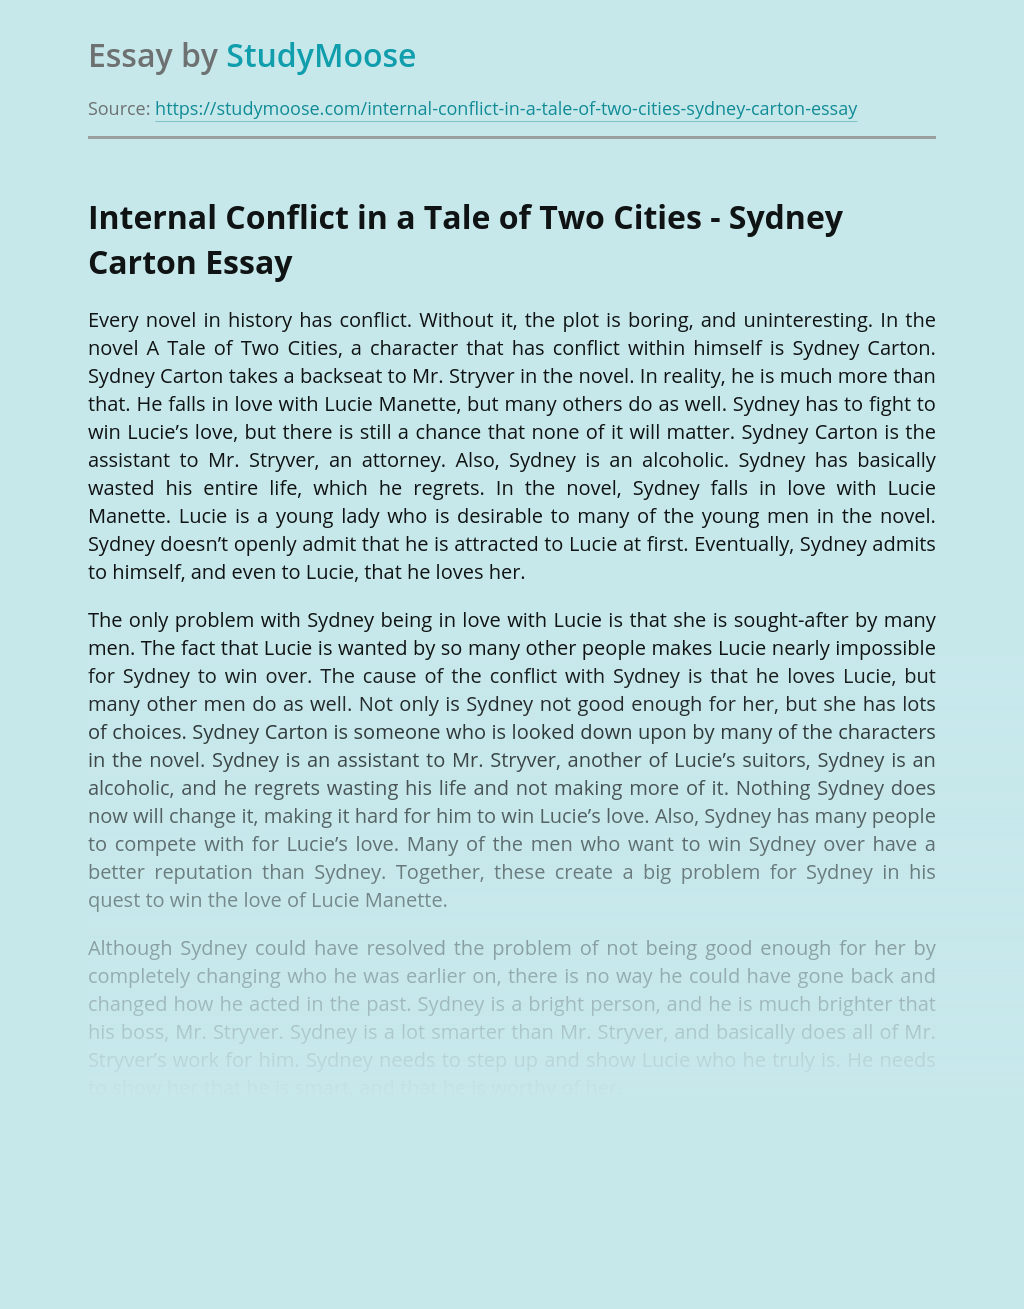 Internal Conflict in a Tale of Two Cities - Sydney Carton